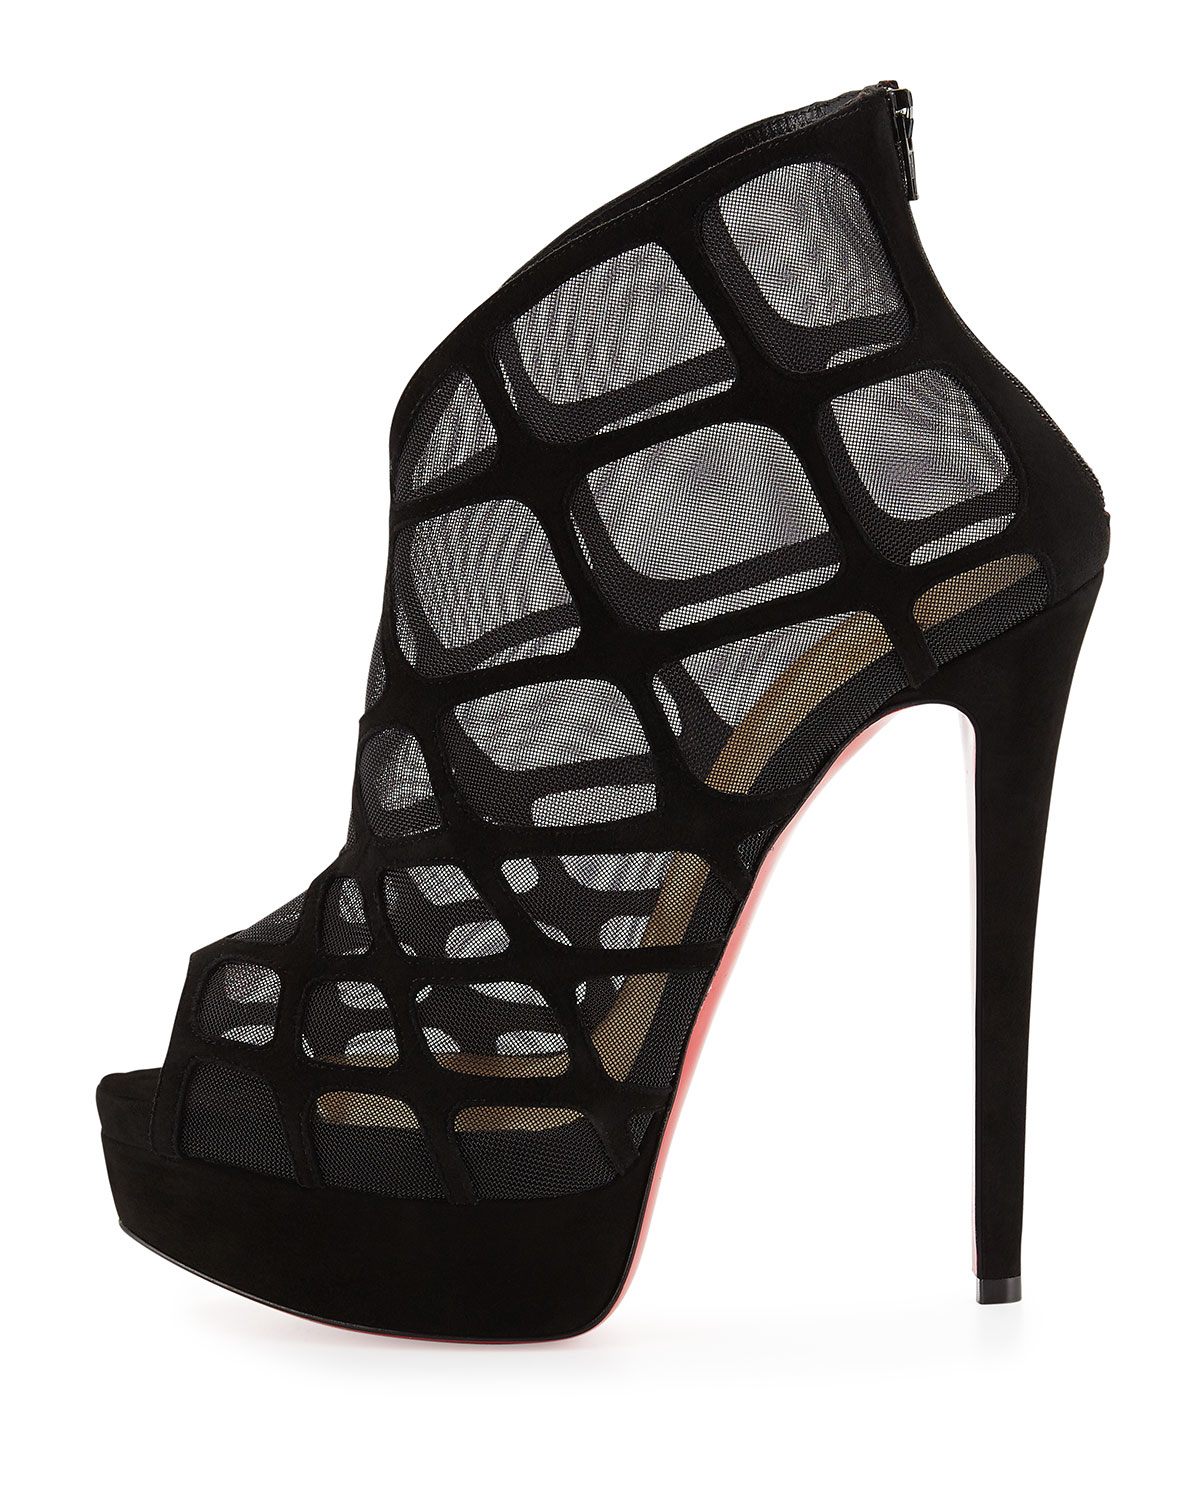 Christian louboutin Altarakna Mesh-caged Red Sole Bootie in Black ...